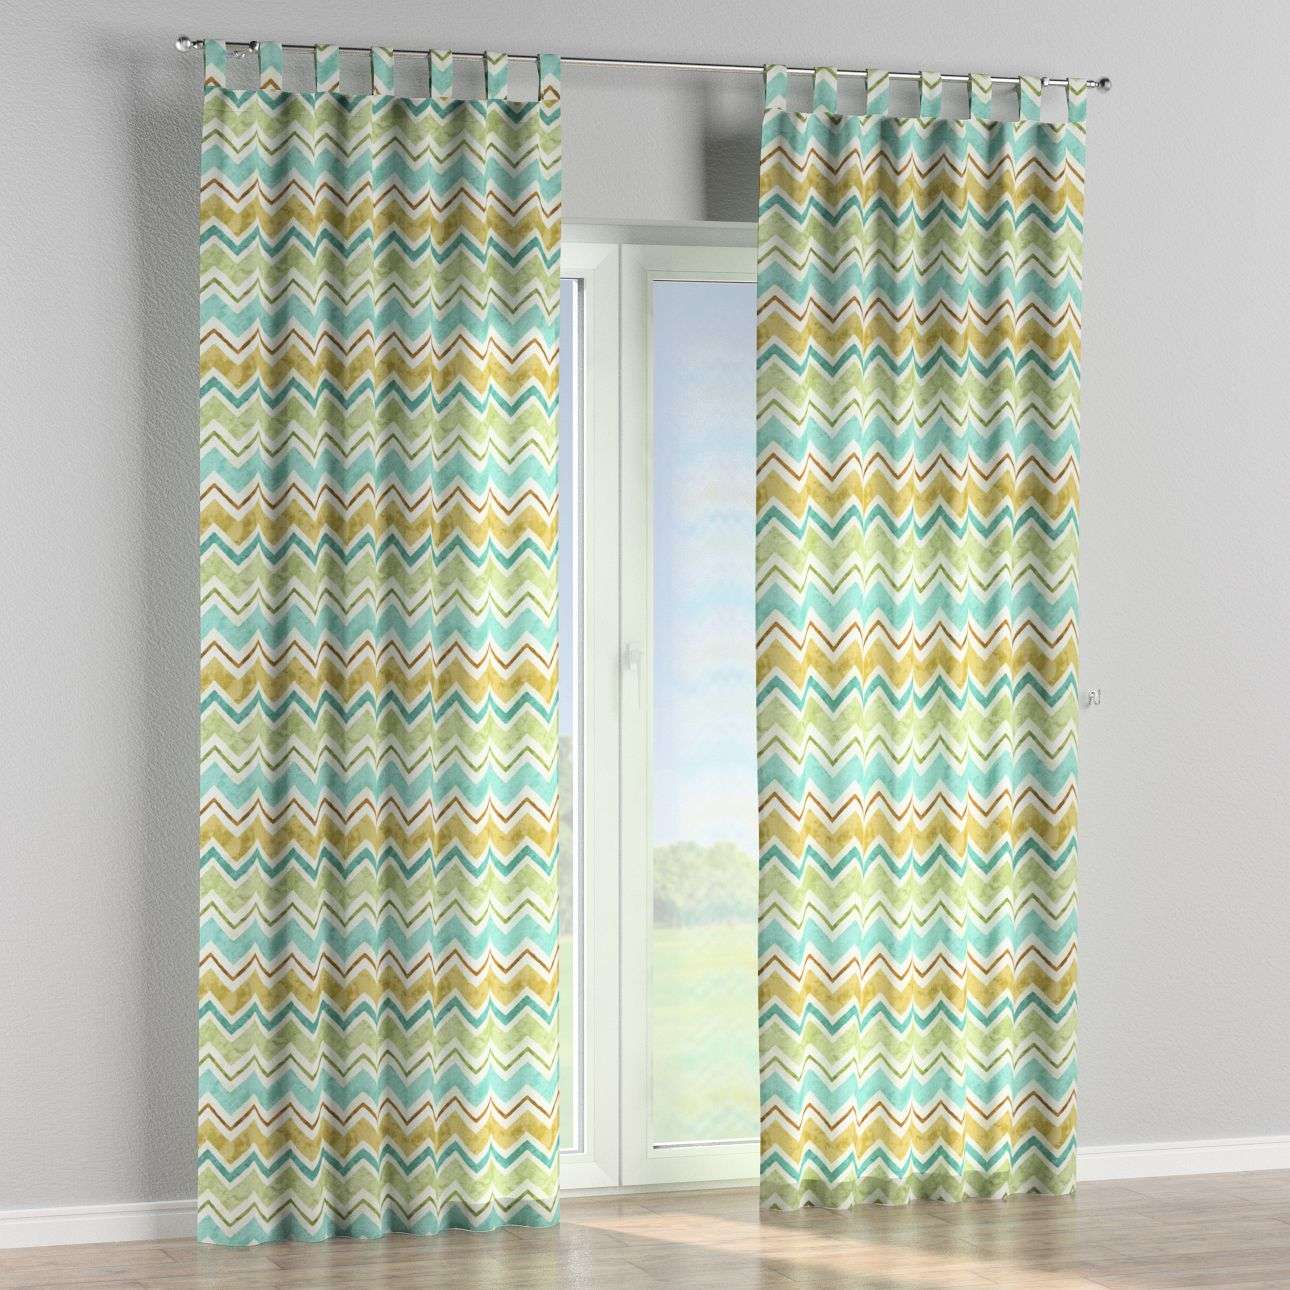 Tab top curtains 130 x 260 cm (51 x 102 inch) in collection Acapulco, fabric: 141-41